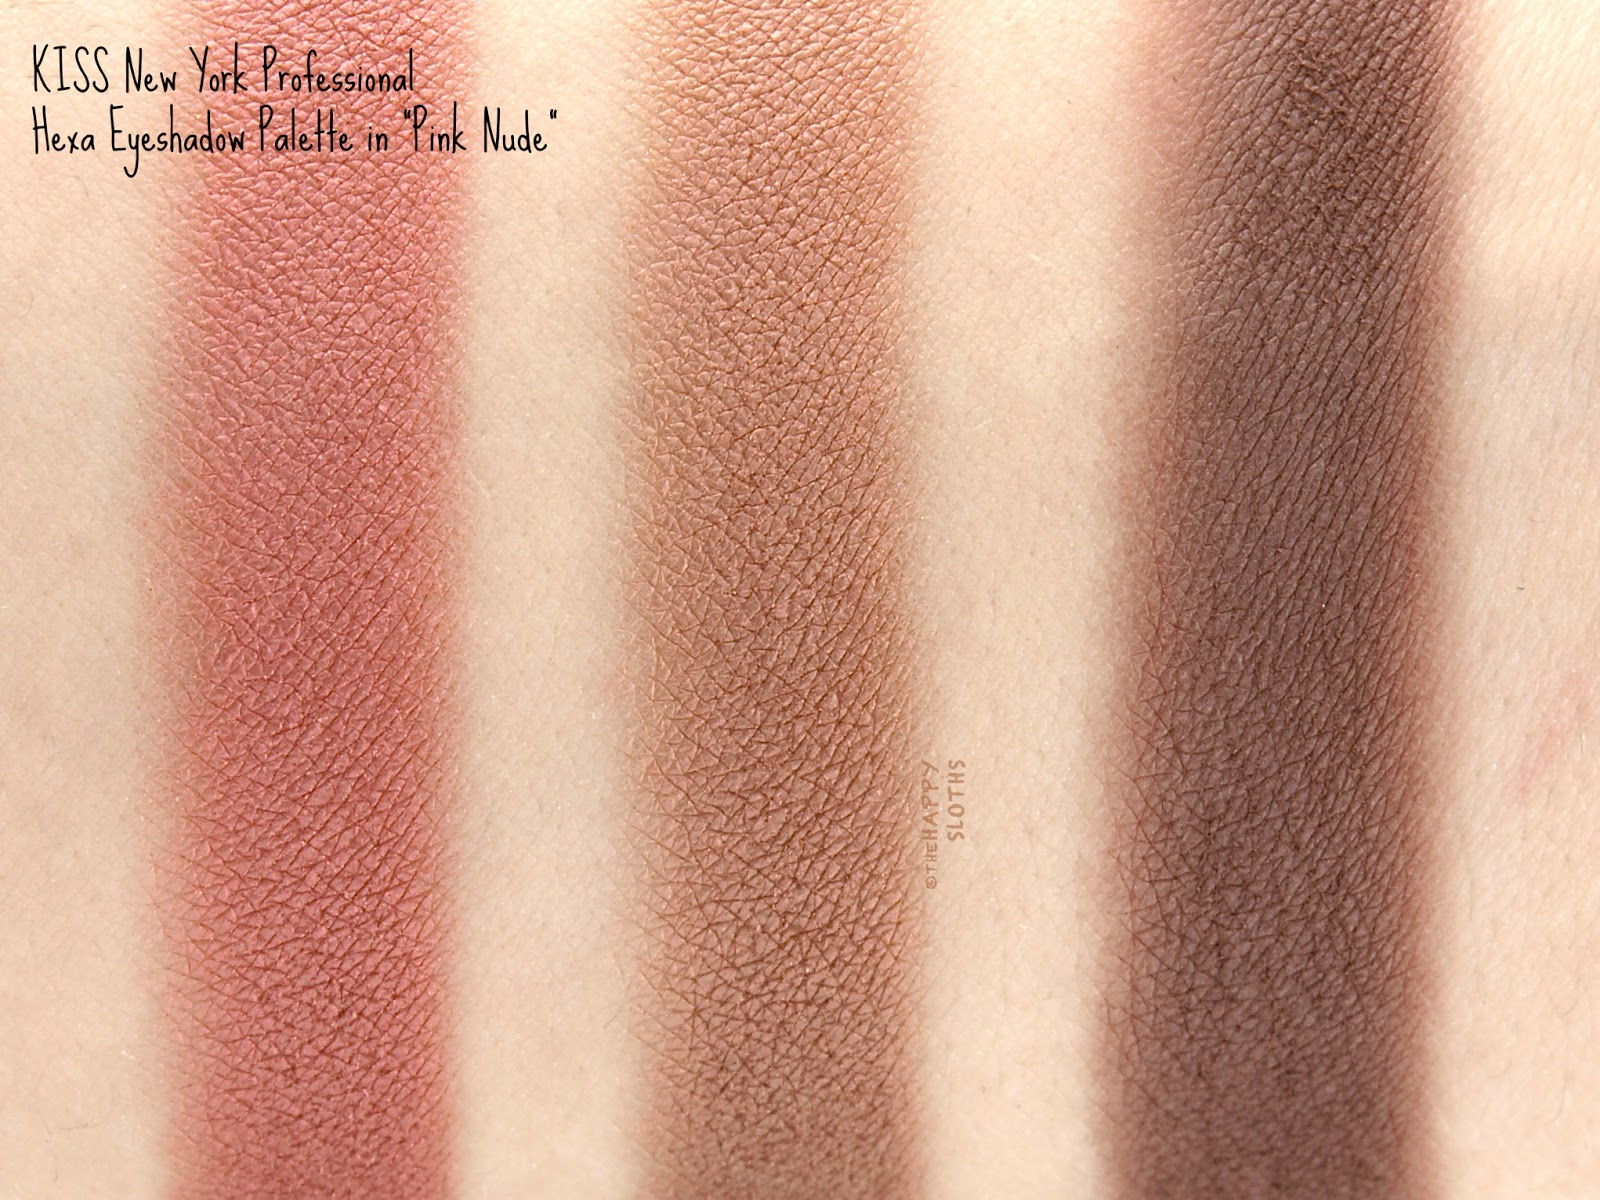 "KISS New York Professional Hexa Eyeshadow Palette in ""Pink Nude"": Review and Swatches"